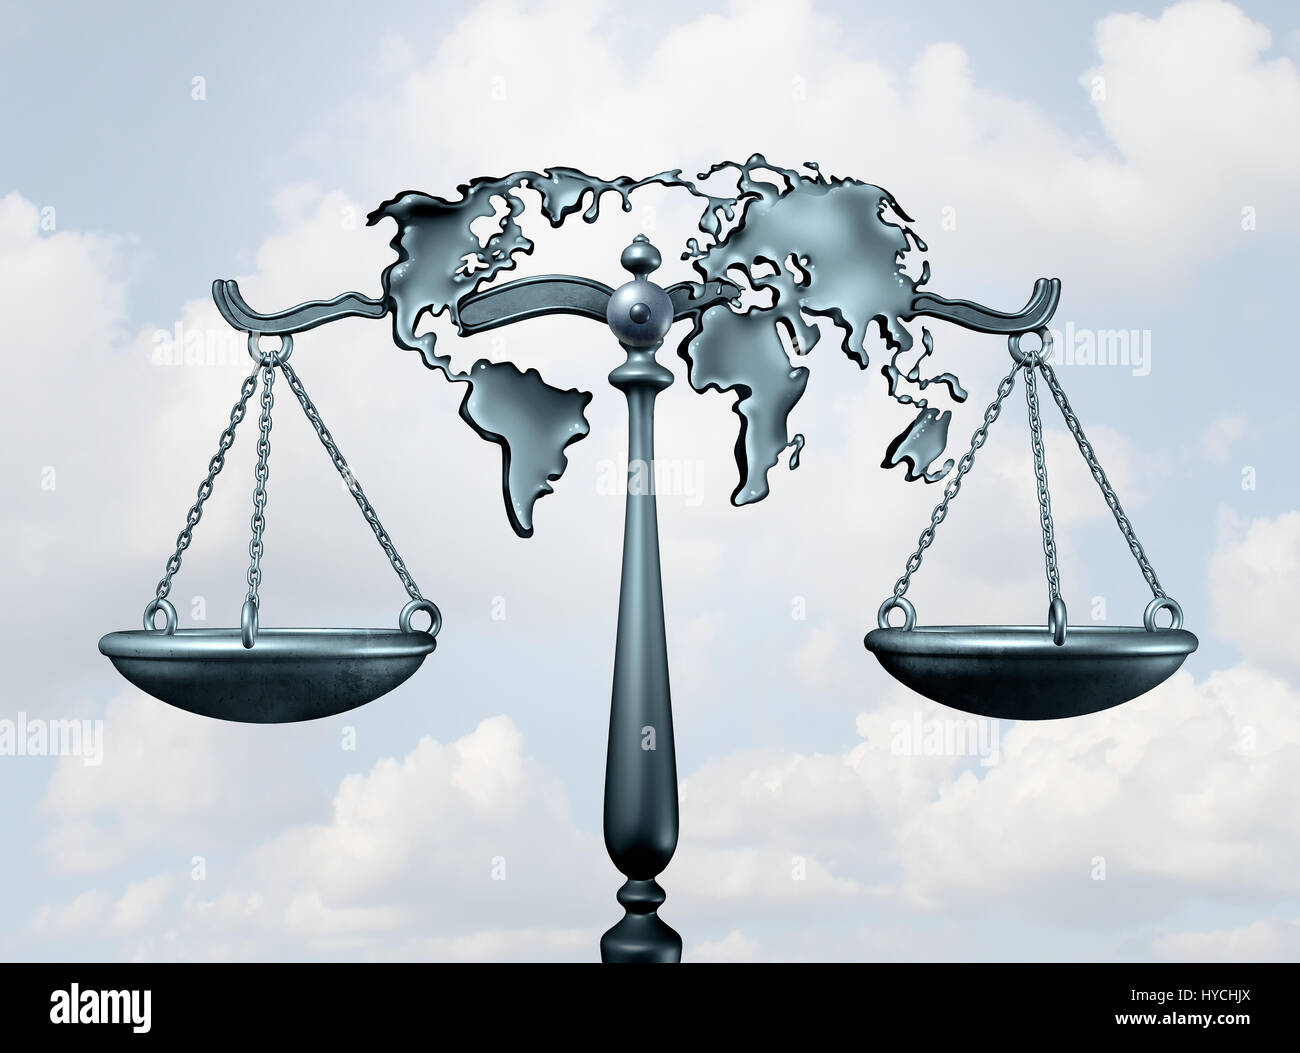 International law and global legal system concept as a